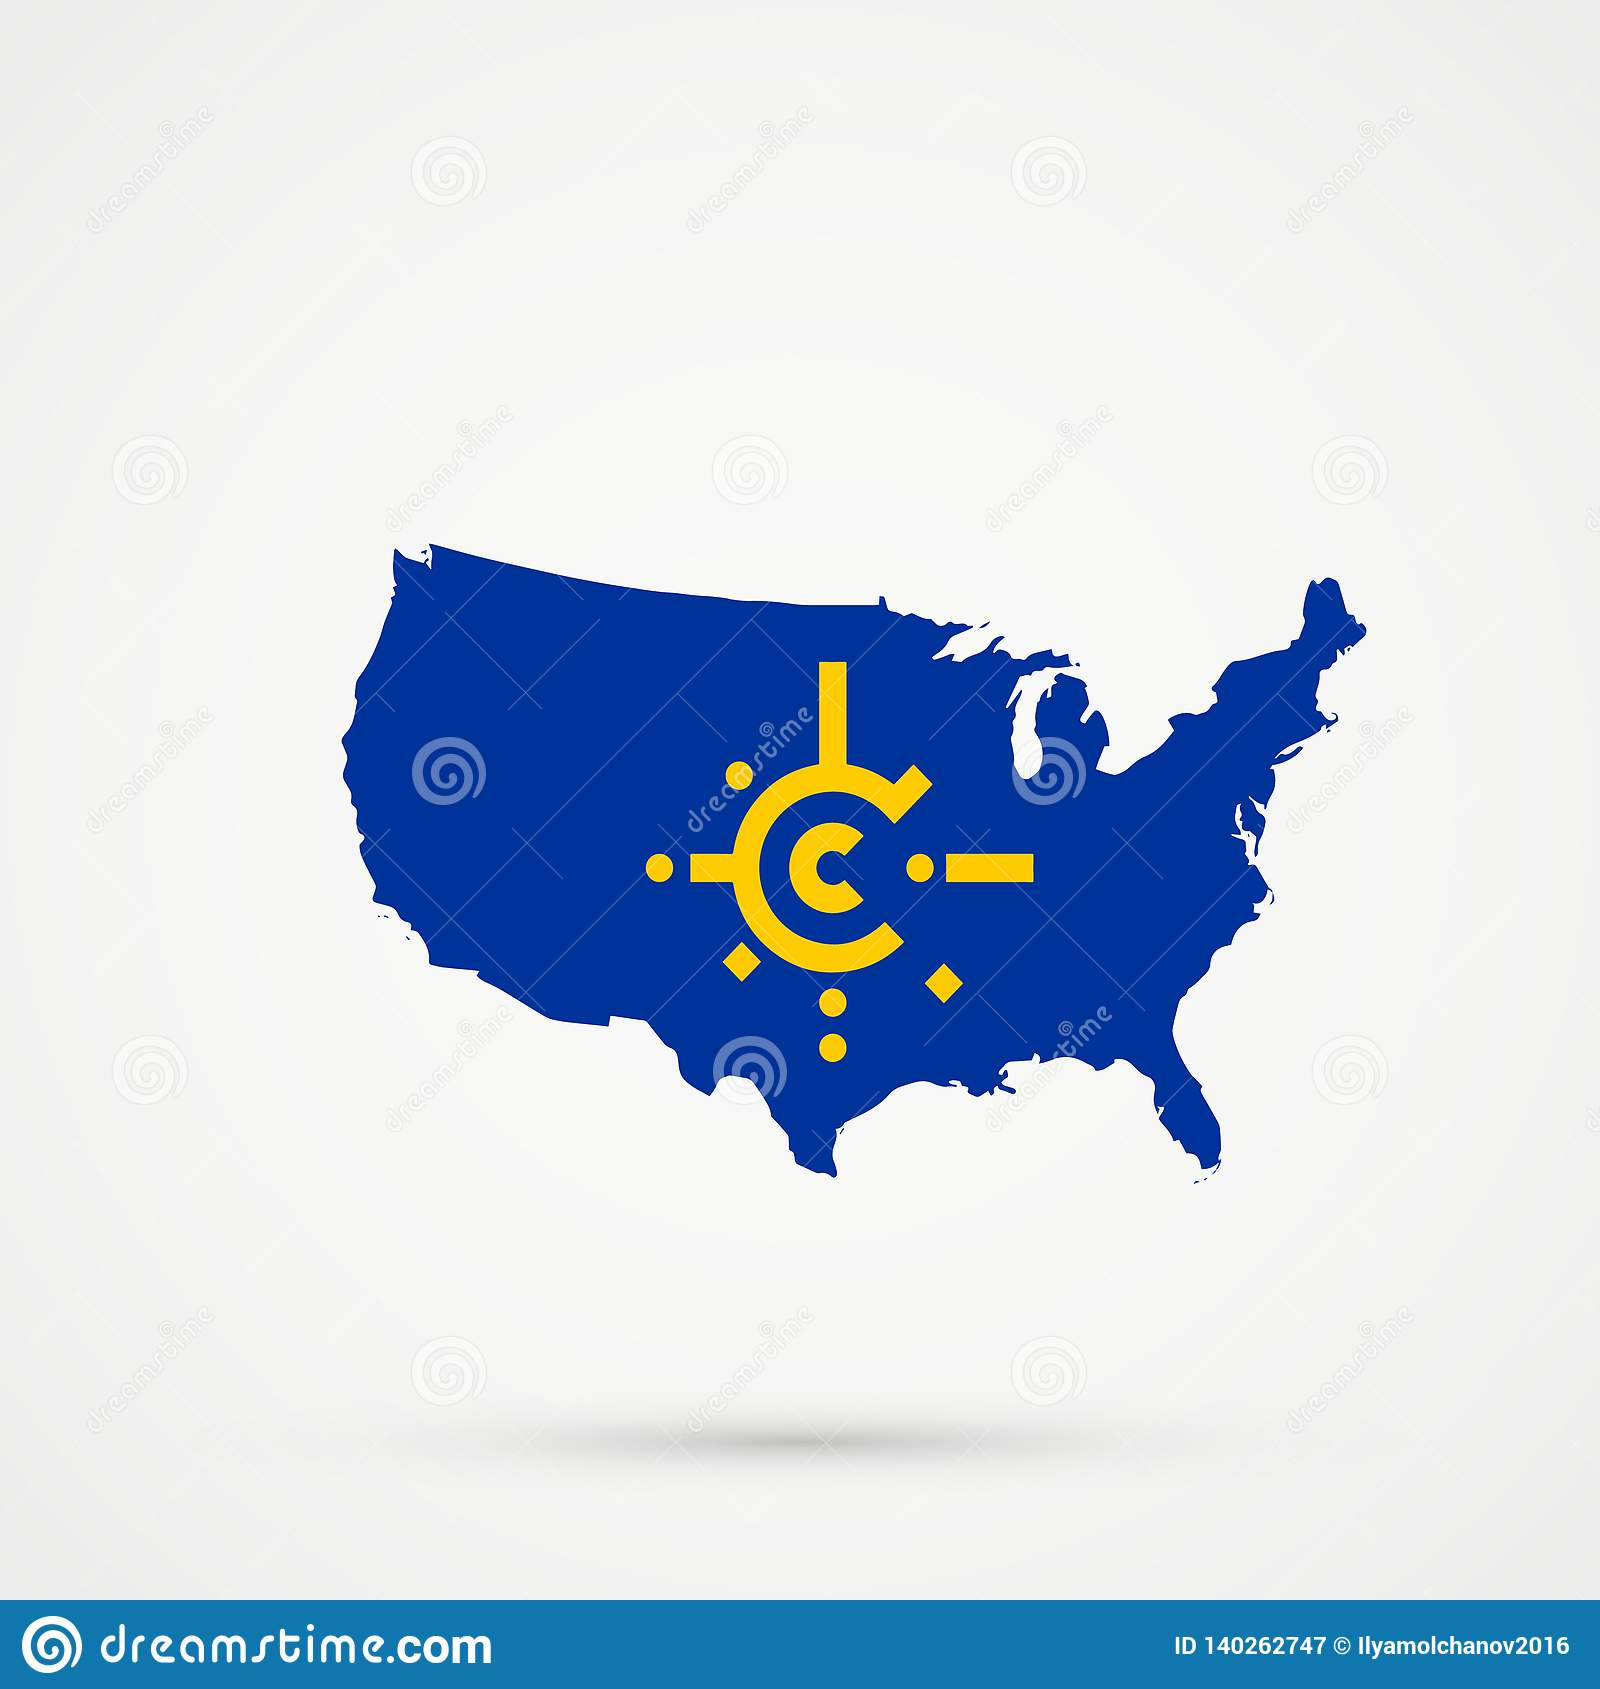 Central States In Usa on